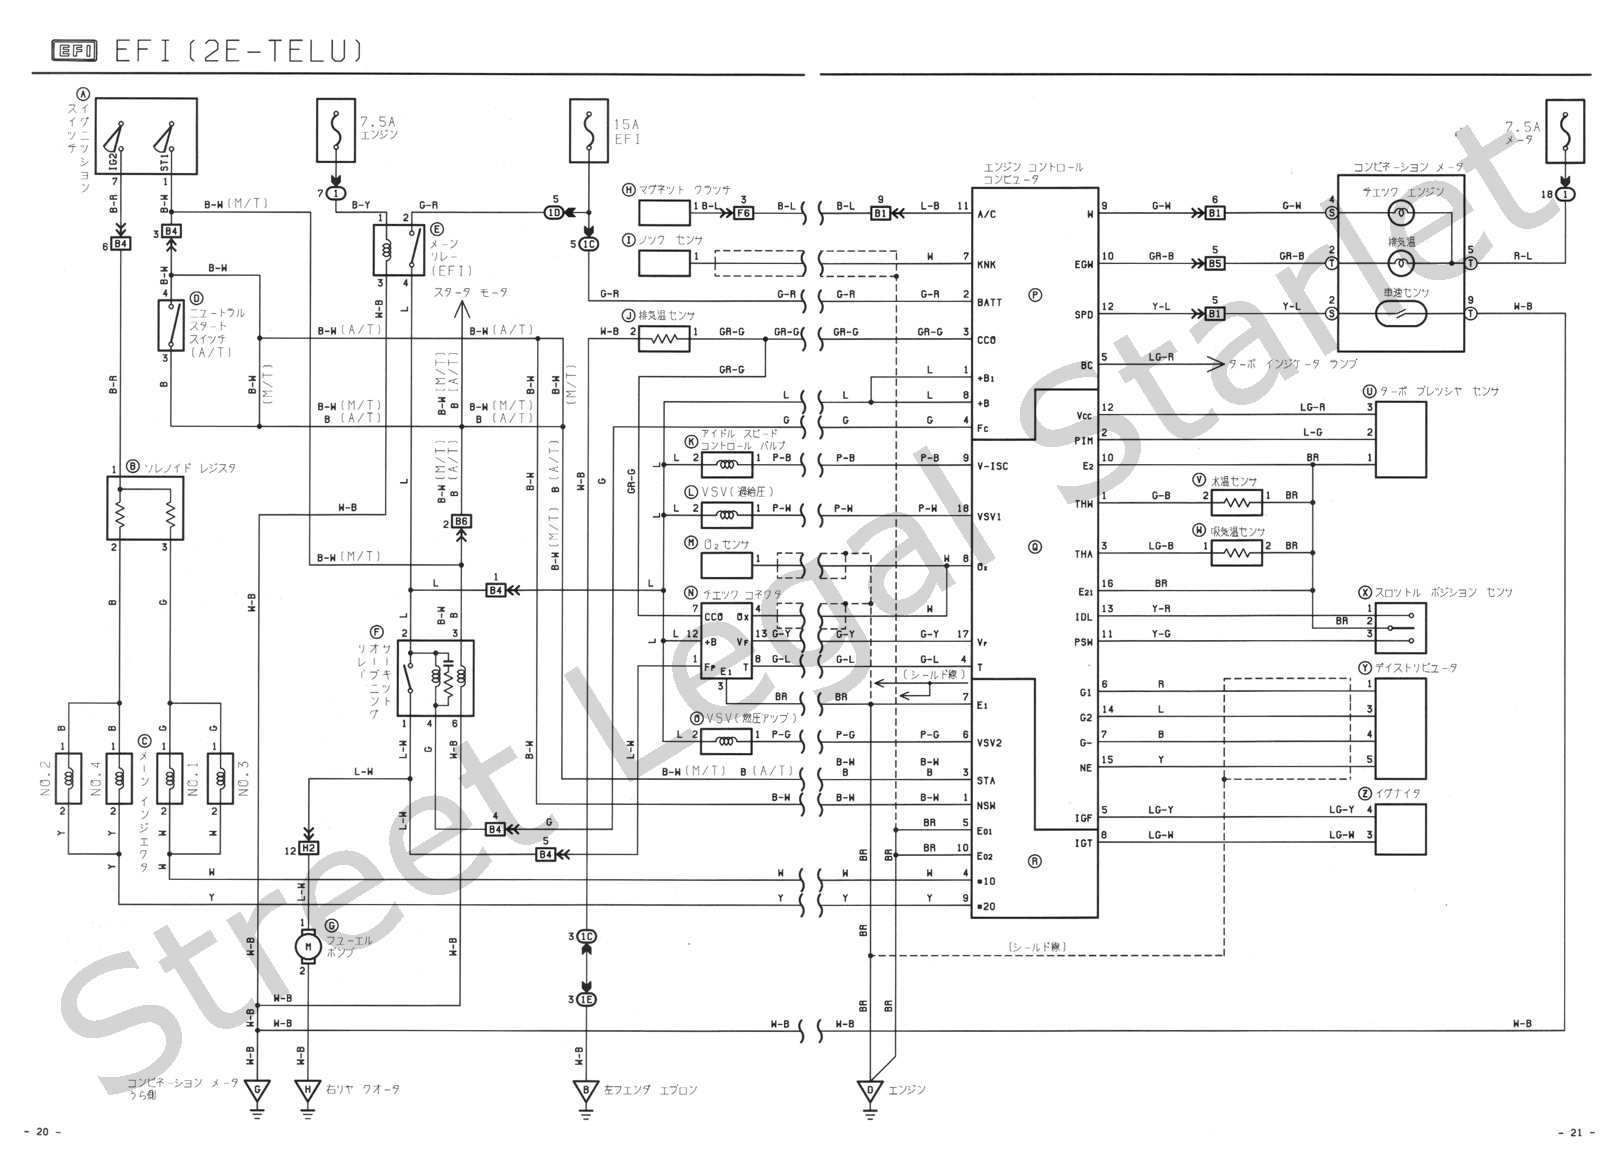 Wiring Diagram Toyota Aygo Electrical House Yaris Ecu Pin Out Gt Turbo Rh Toyotagtturbo Com 2007 2011